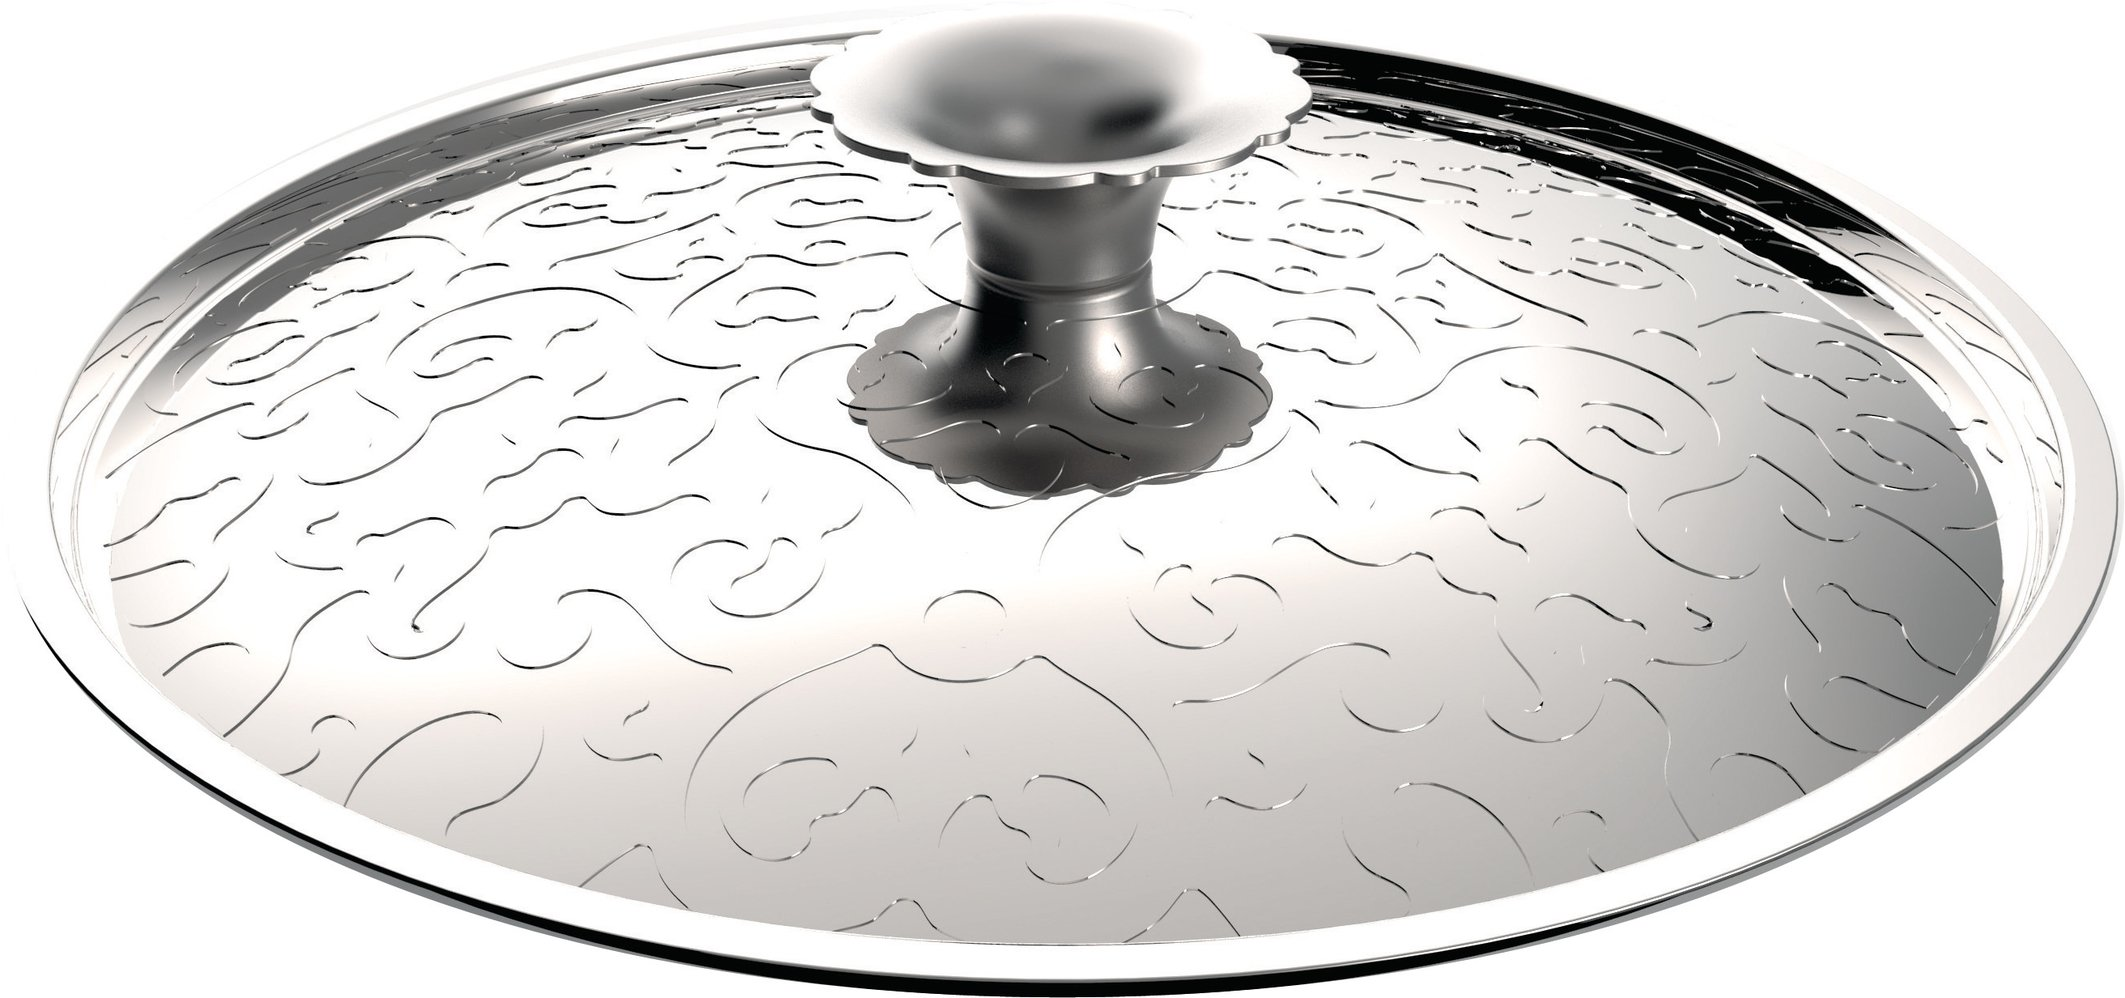 Alessi MW200/28''Dressed'' Lid in 18/10 Stainless Steel Mirror Polished With Relief Decoration, Silver